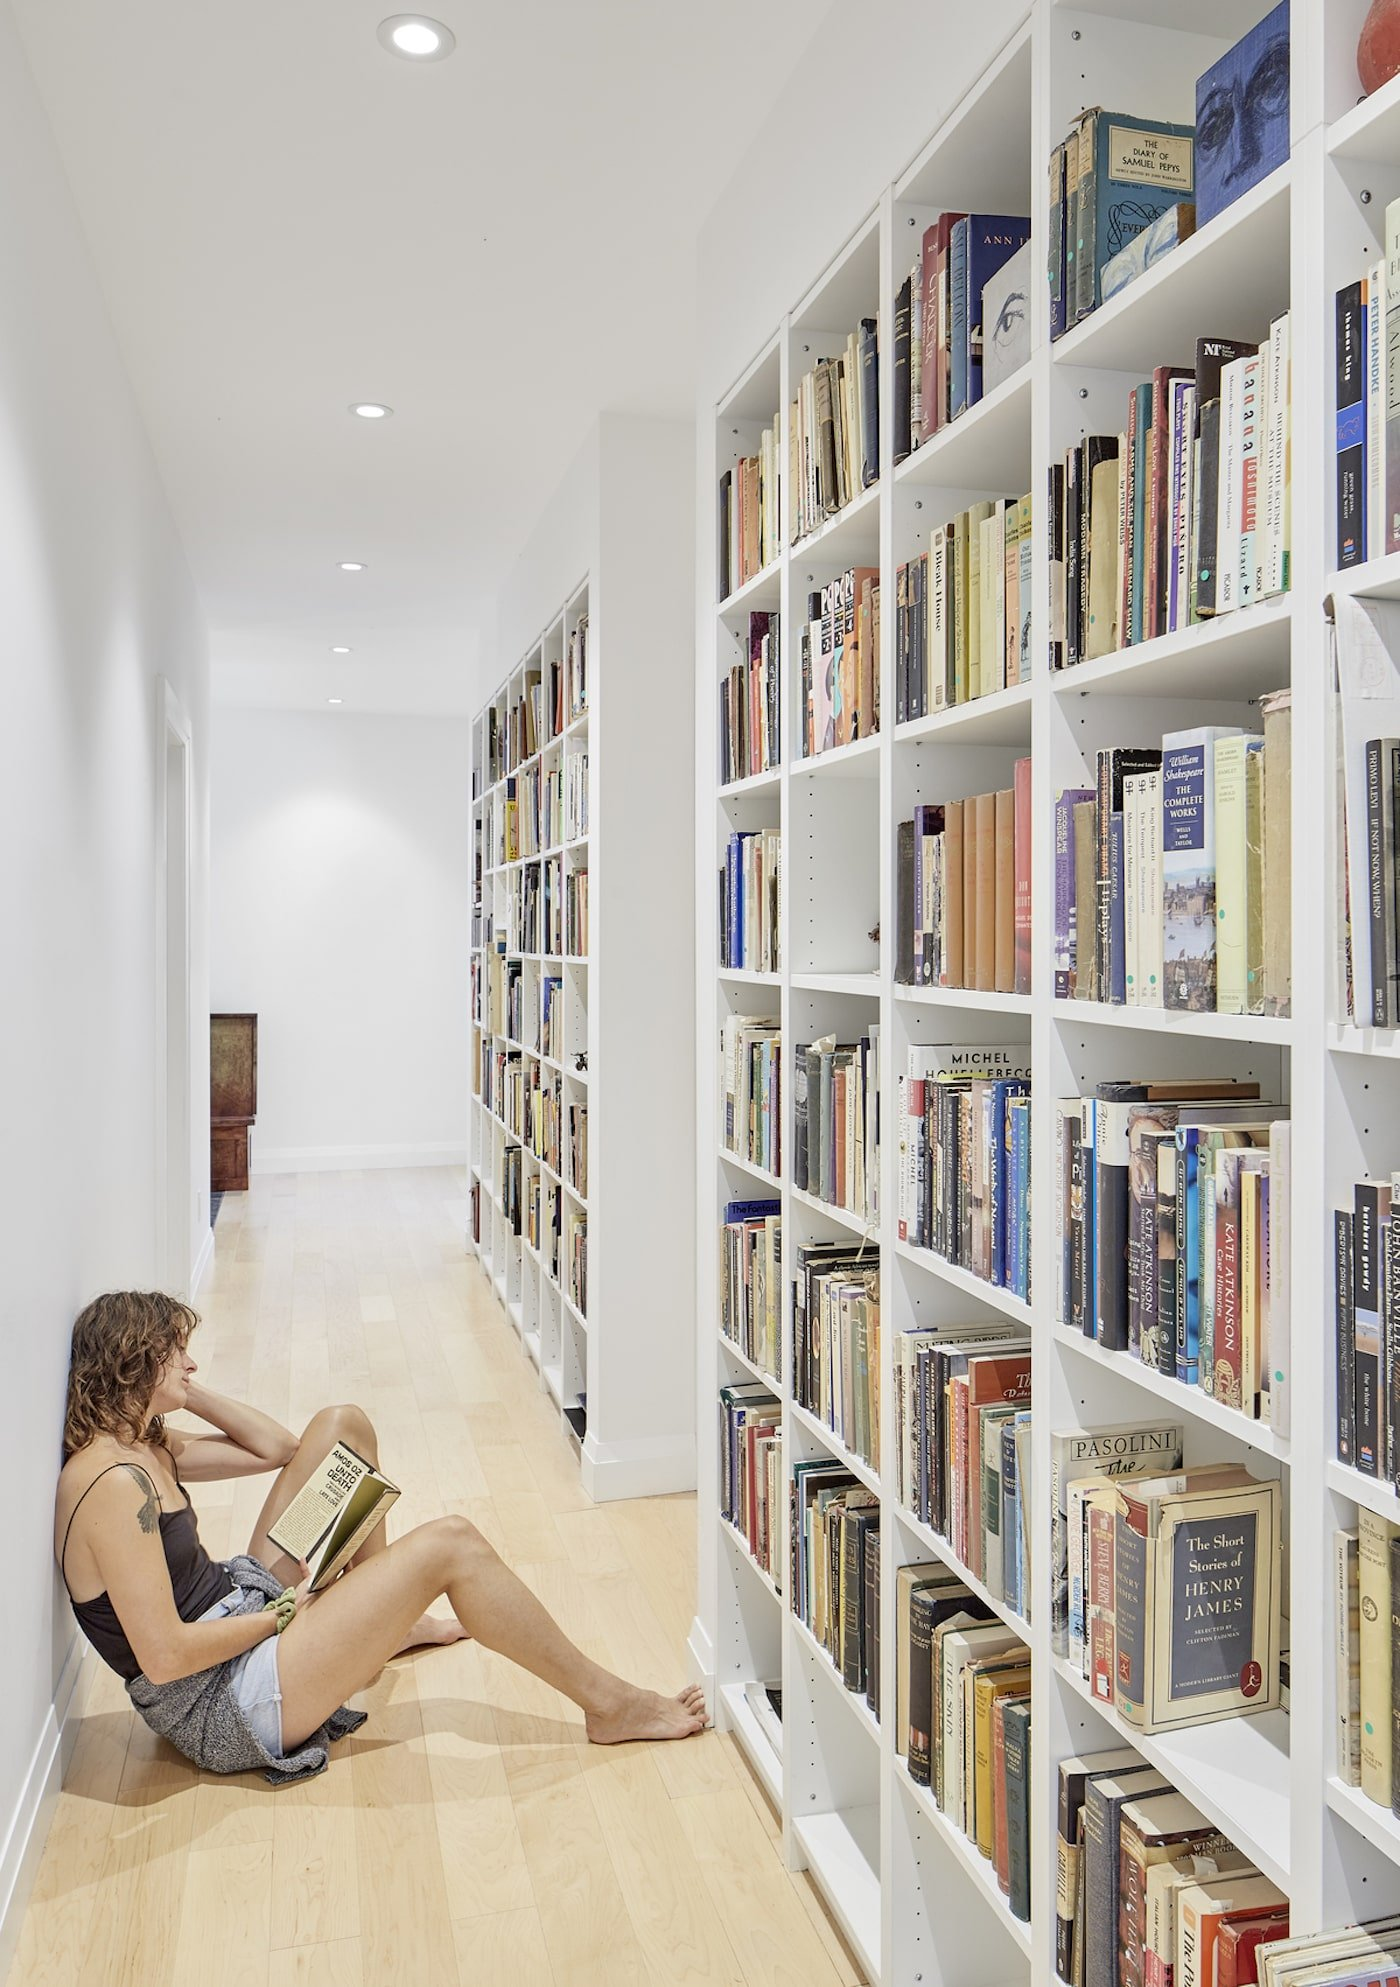 Timber bookshelf in off-grid home with timber flooring